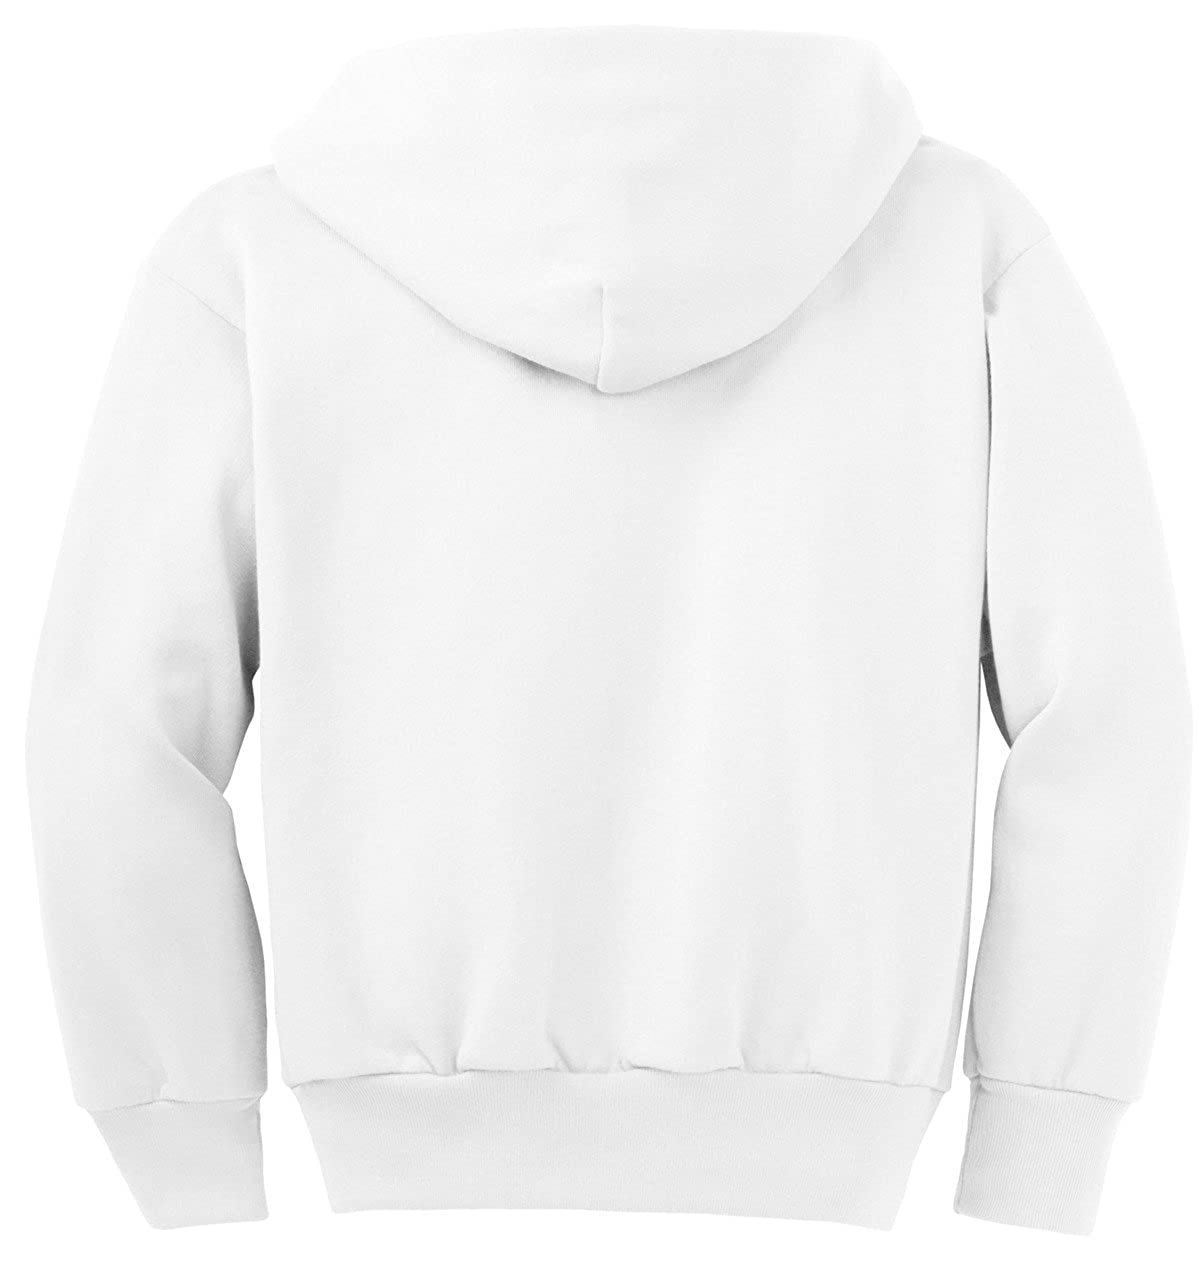 Joes USA Youth Full-Zip Hooded Sweatshirts in 22 Colors